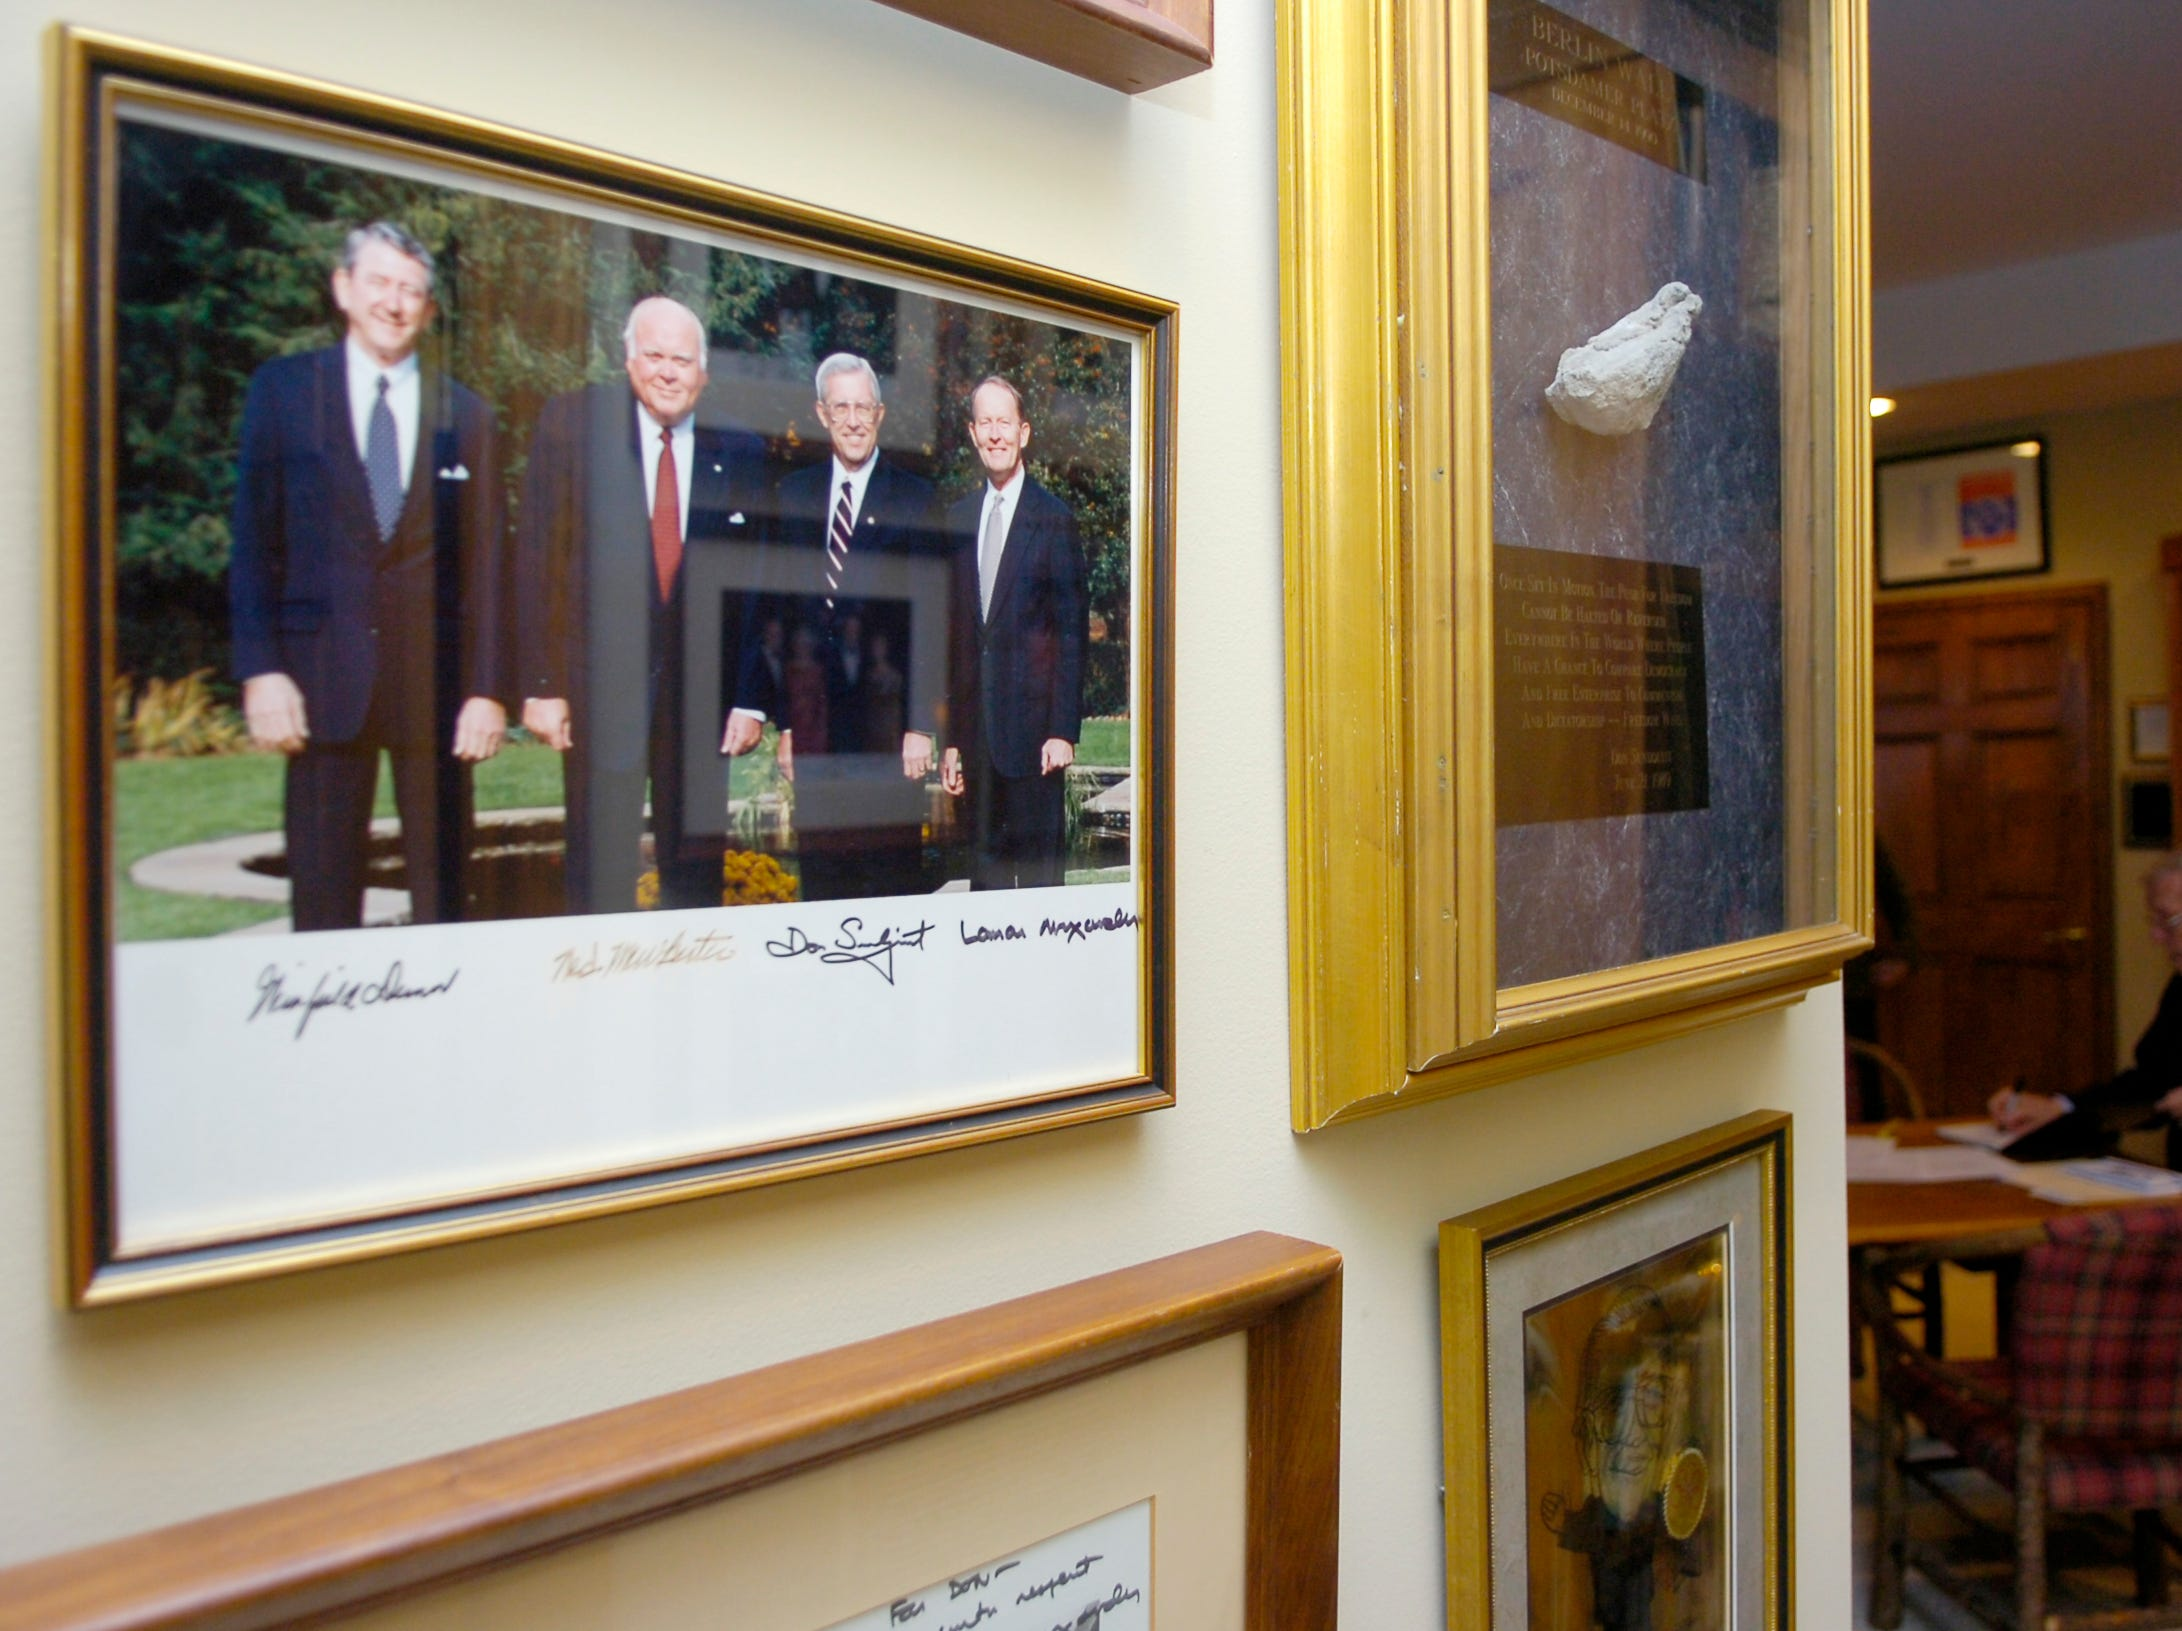 A photograph of former Tennessee Governor Don Sundquist along with Winfield Dunn, Ned McWHerter and Lamar Alexander hangs next to a piece of the Berlin Wall in his office area at his home in Laurel Valley, located in Townsend, TN. Sundquist served as governor from 1995 to 2002.